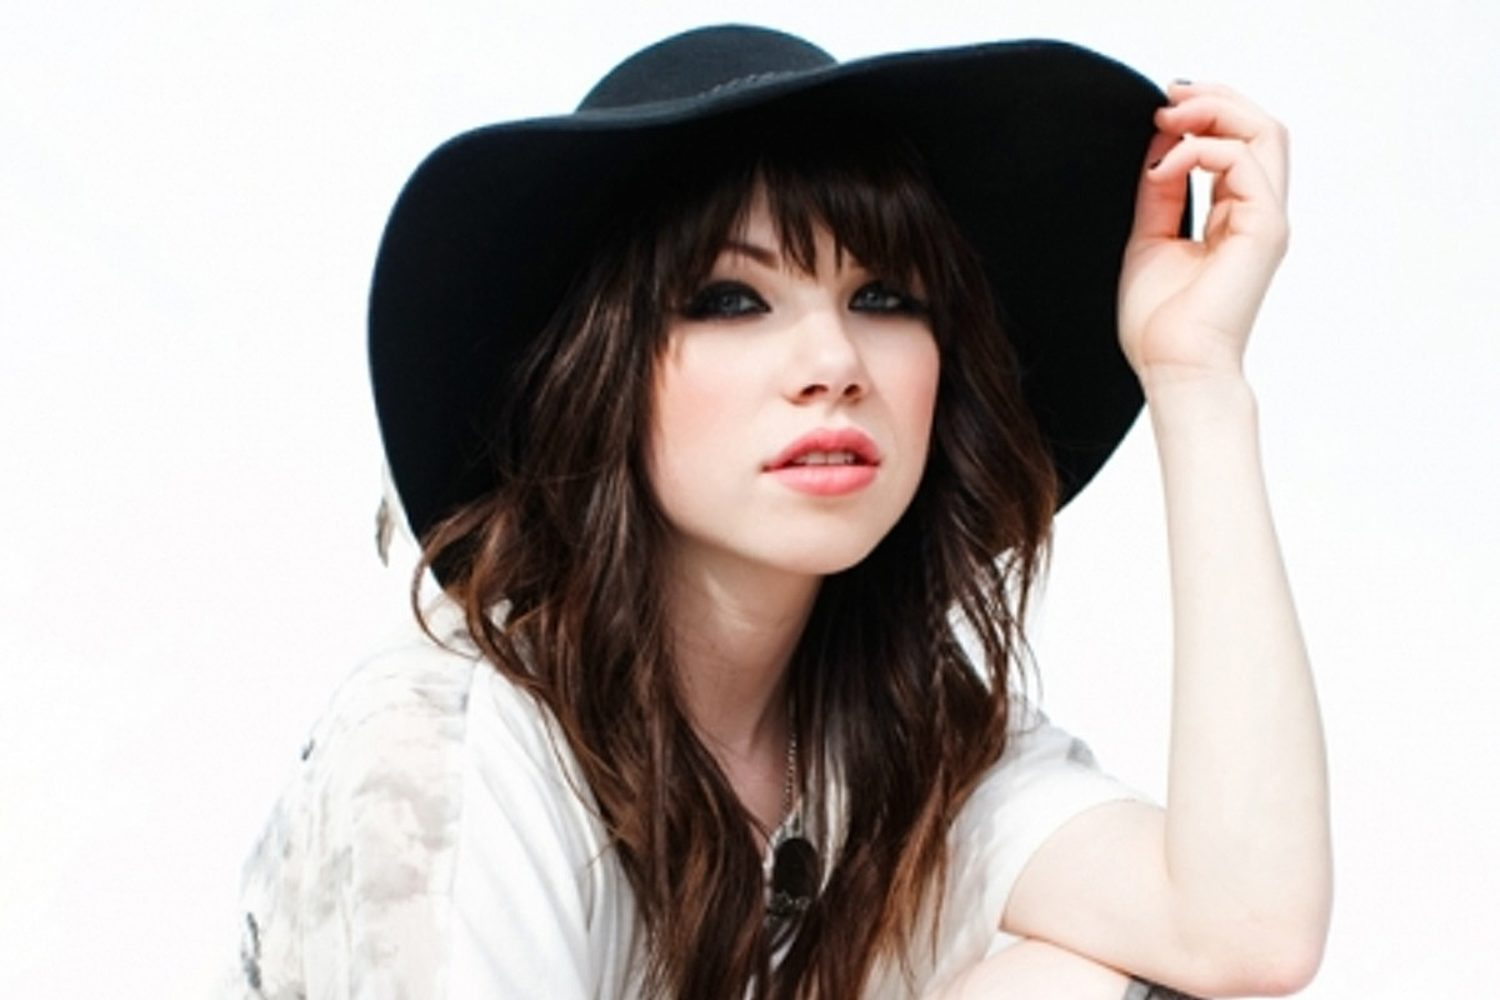 Carly Rae Jepsen covers Years & Years' 'King'